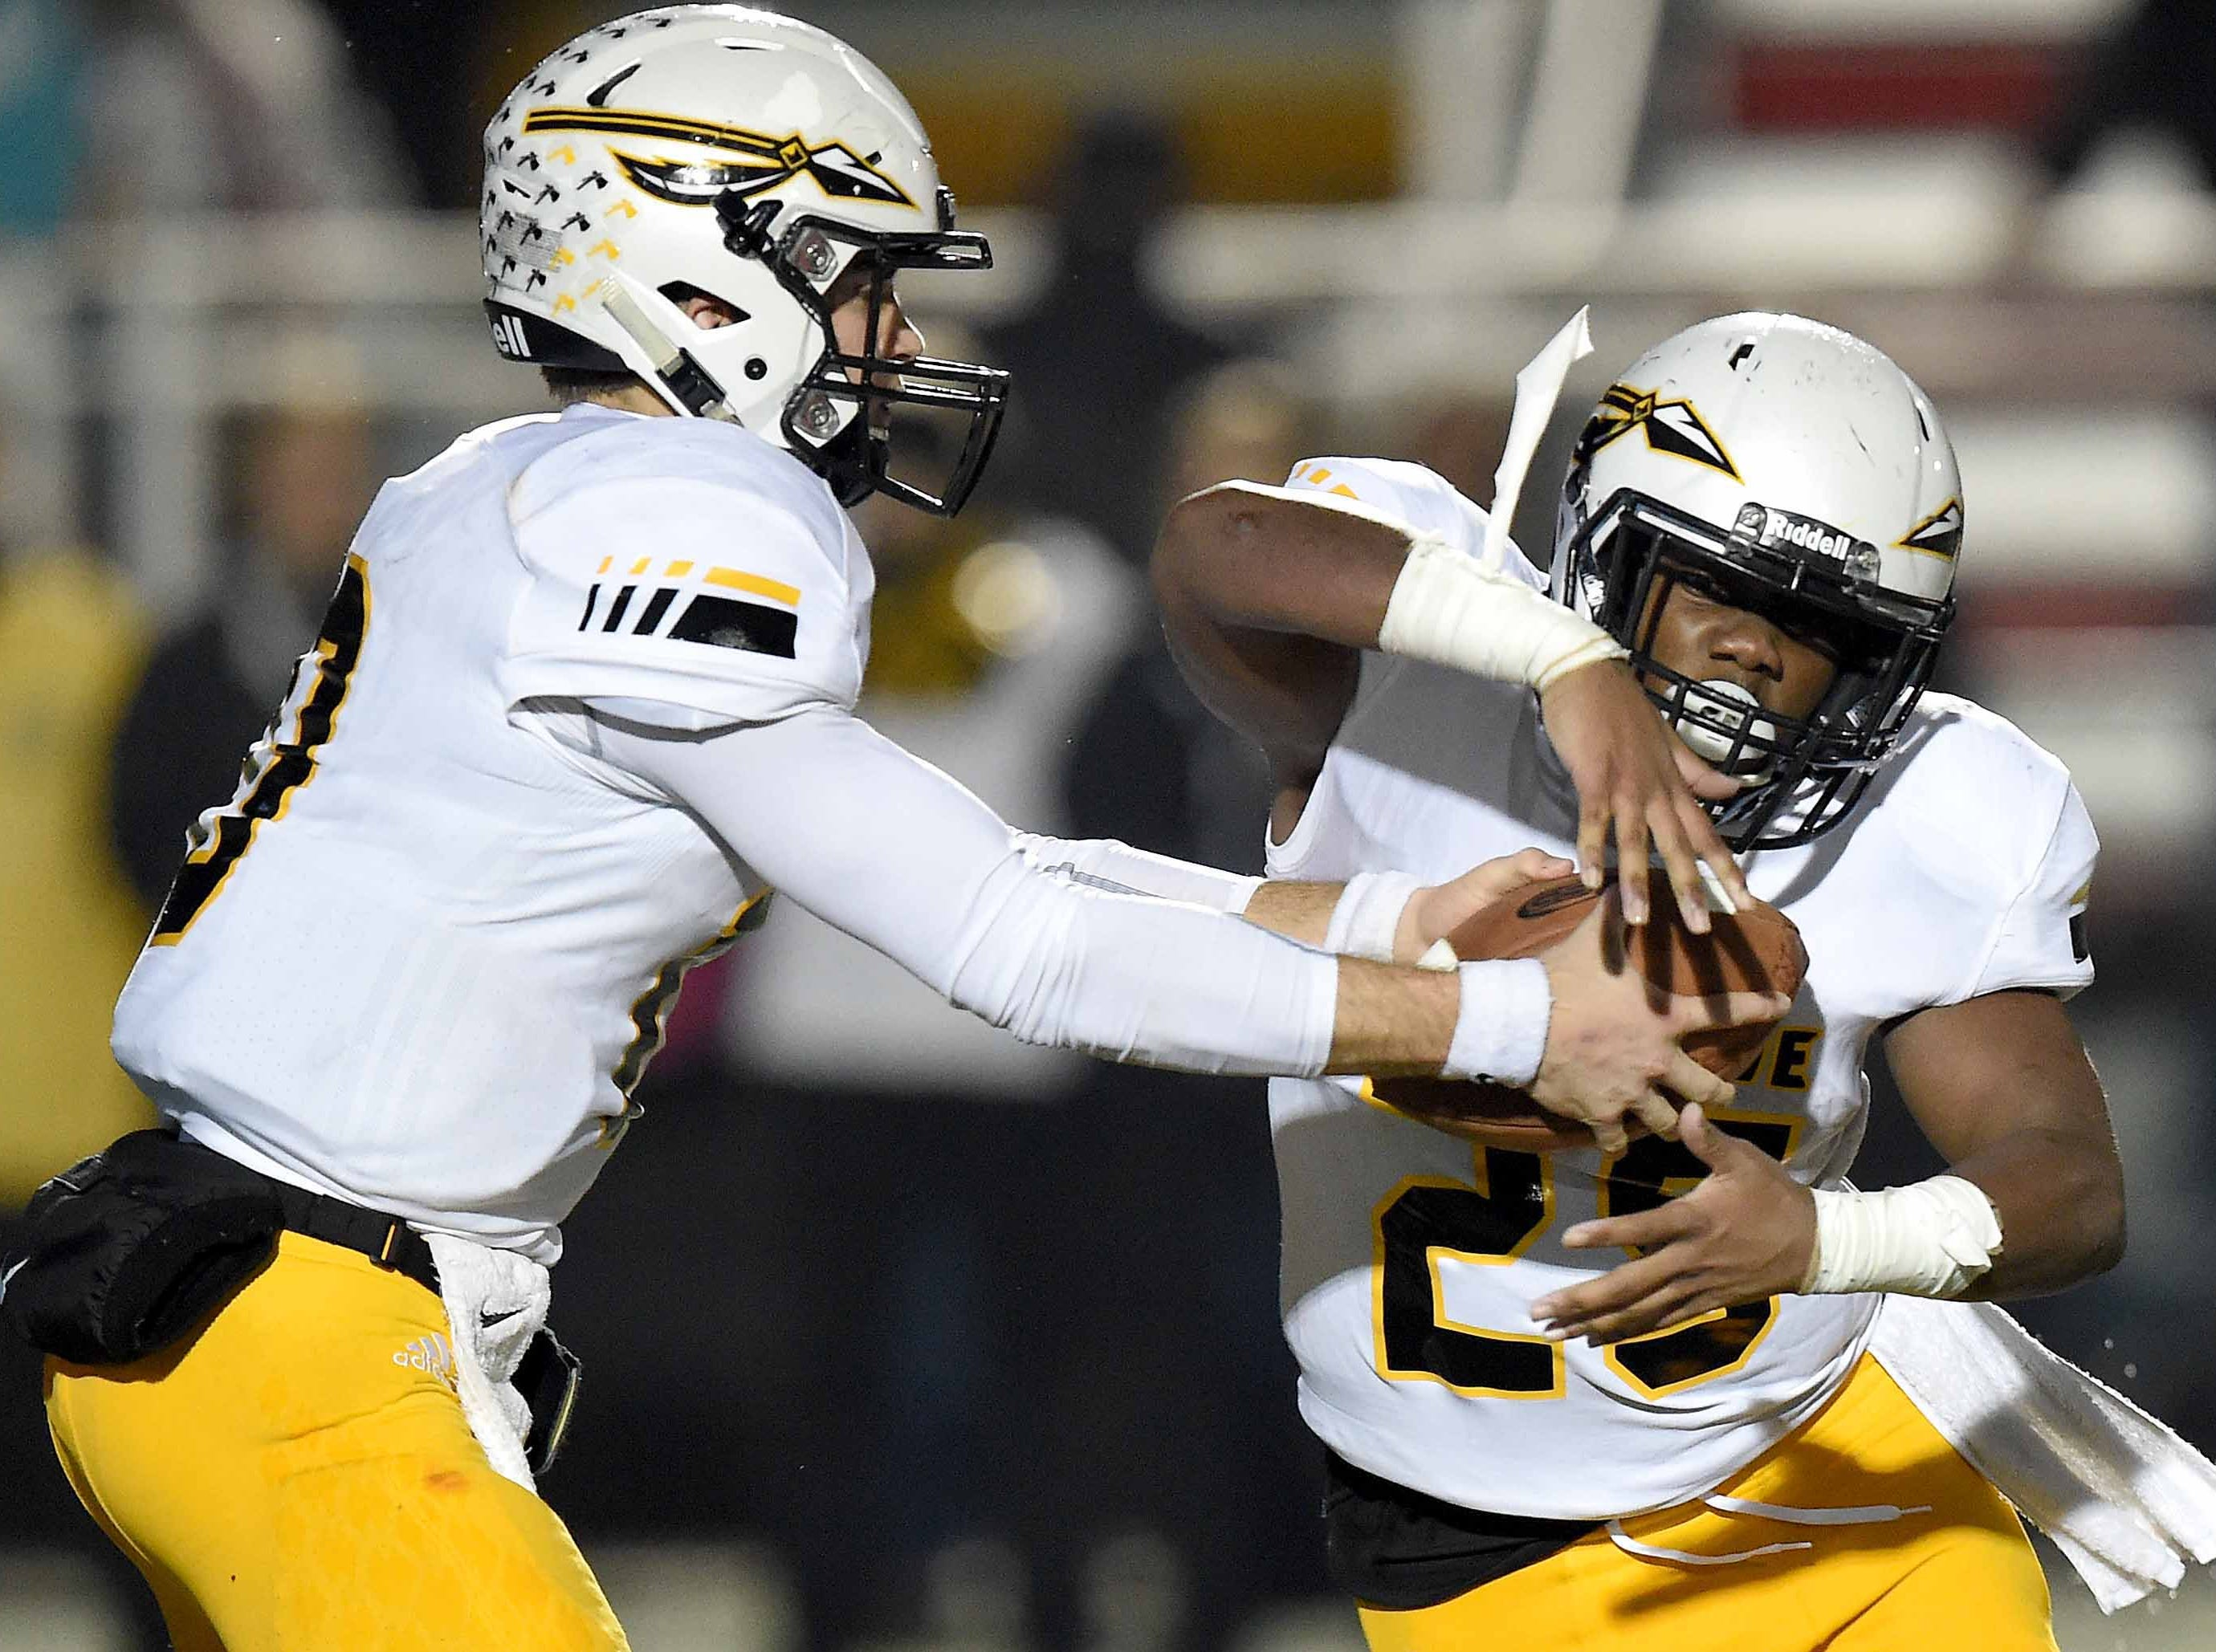 Oak Grove quarterback John Rhys Plumlee hands off to Rasaiah Ruffin (25) in the MHSAA Class 6A South State Championship on Friday, November 23, 2018, at Brandon High School in Brandon, Miss.